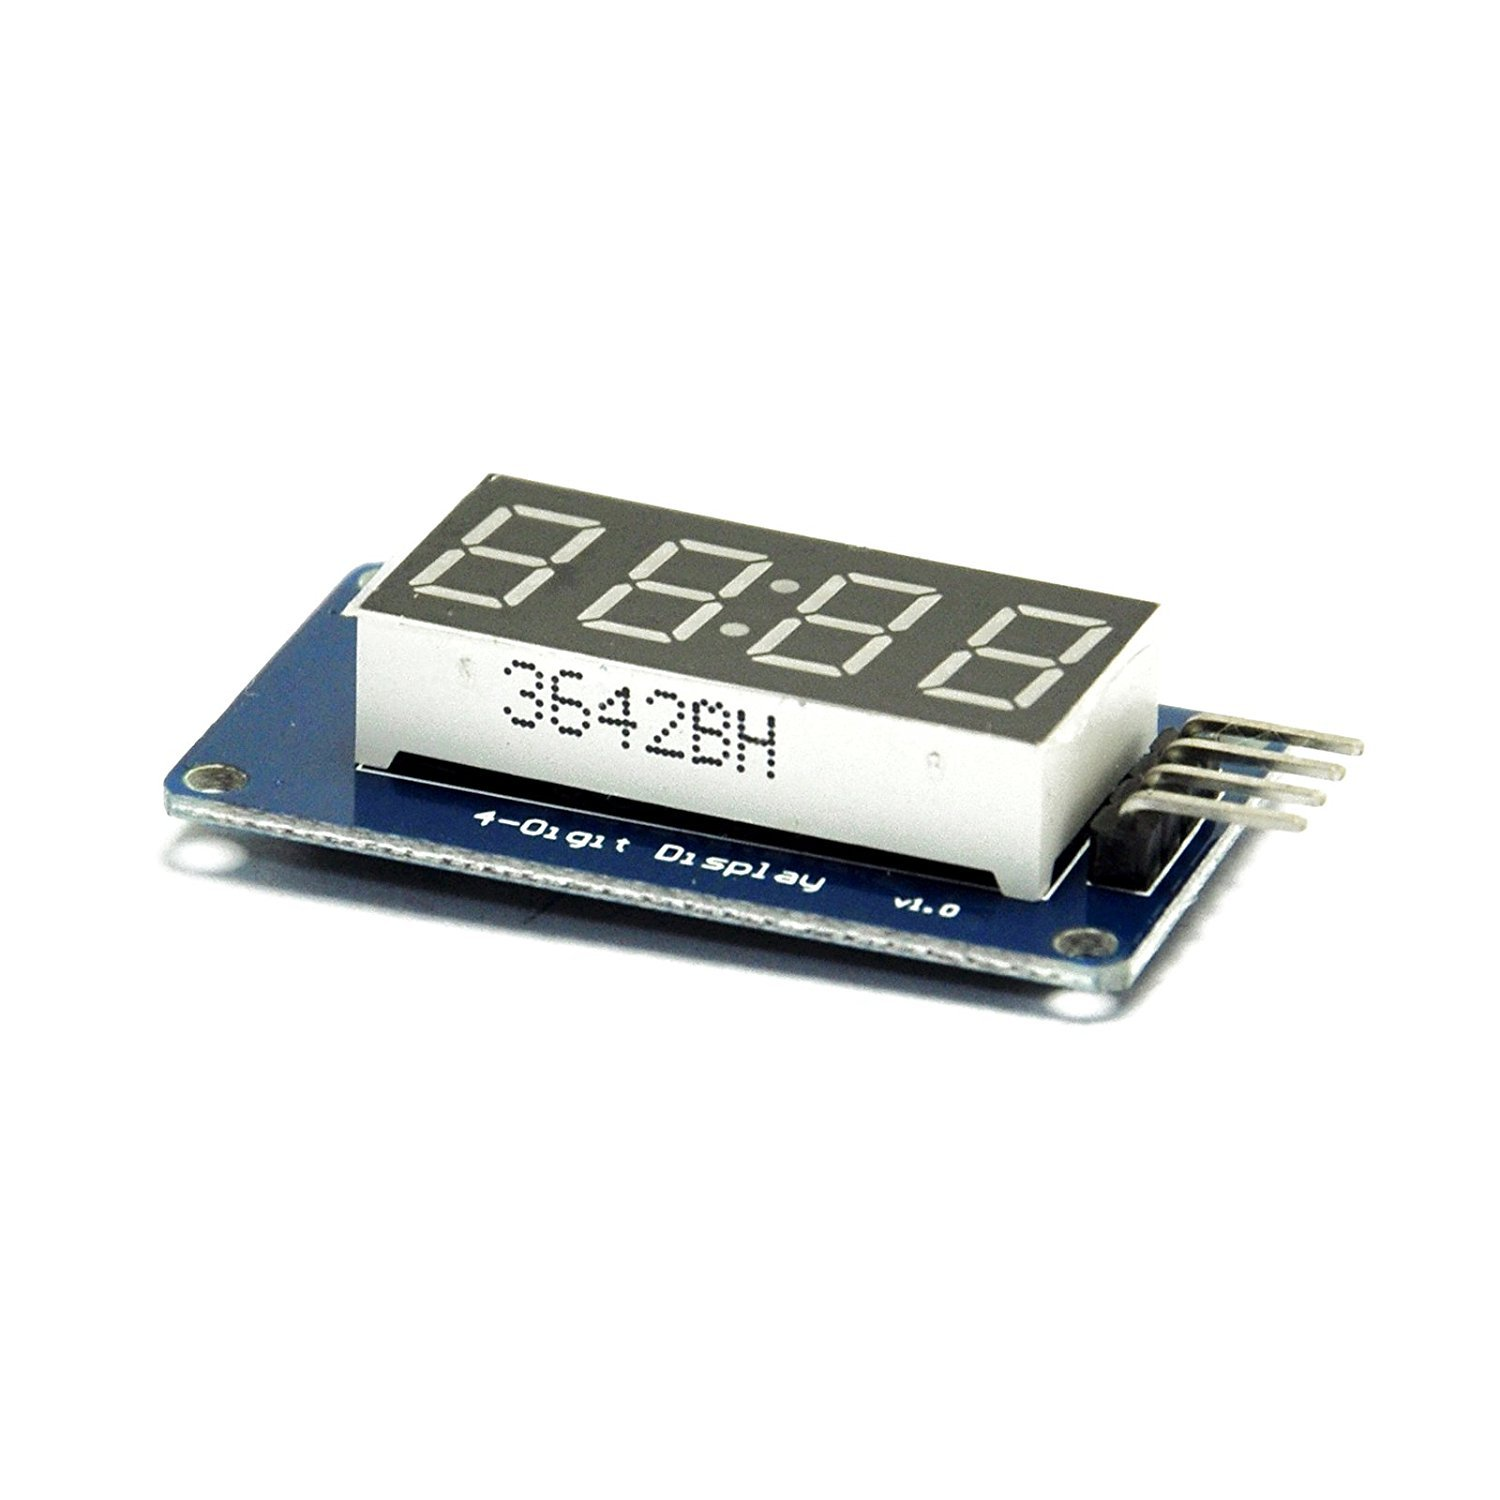 CAOLATOR TM1637 Chip DC 5V / 3,3V LED Digital de 4 bits Módulo de Visualización de 8-Segmentos Display de Reloj para Arduino: Amazon.es: Electrónica